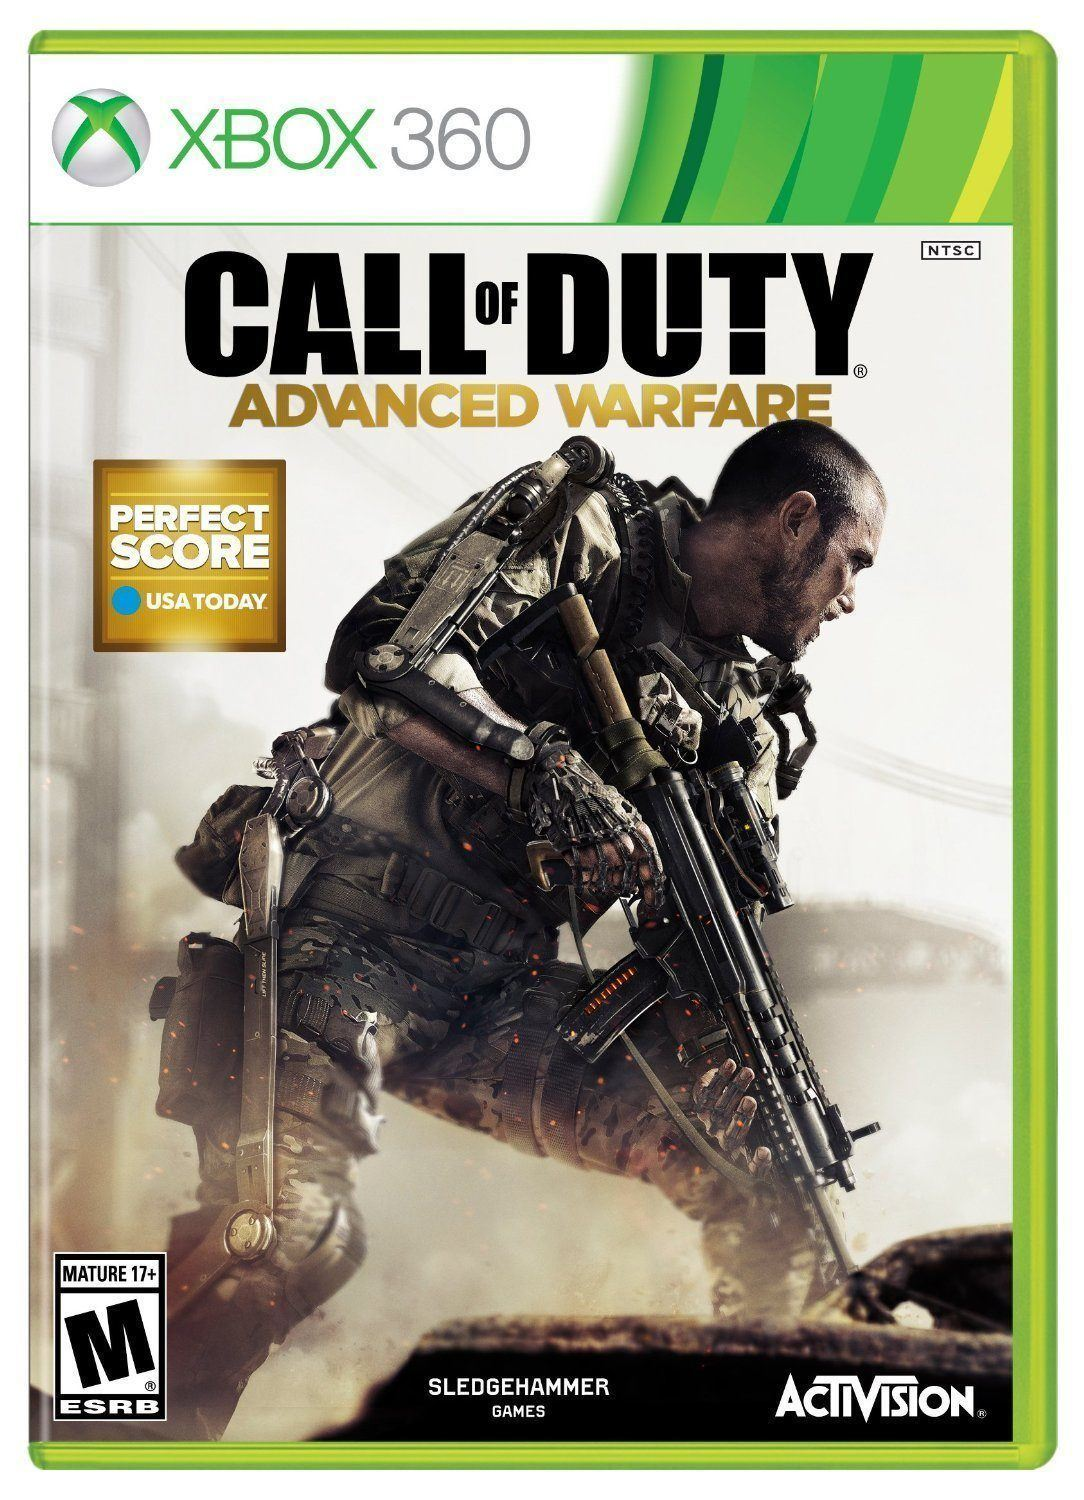 COD AW Call of Duty Advanced Warfare Domination Mode